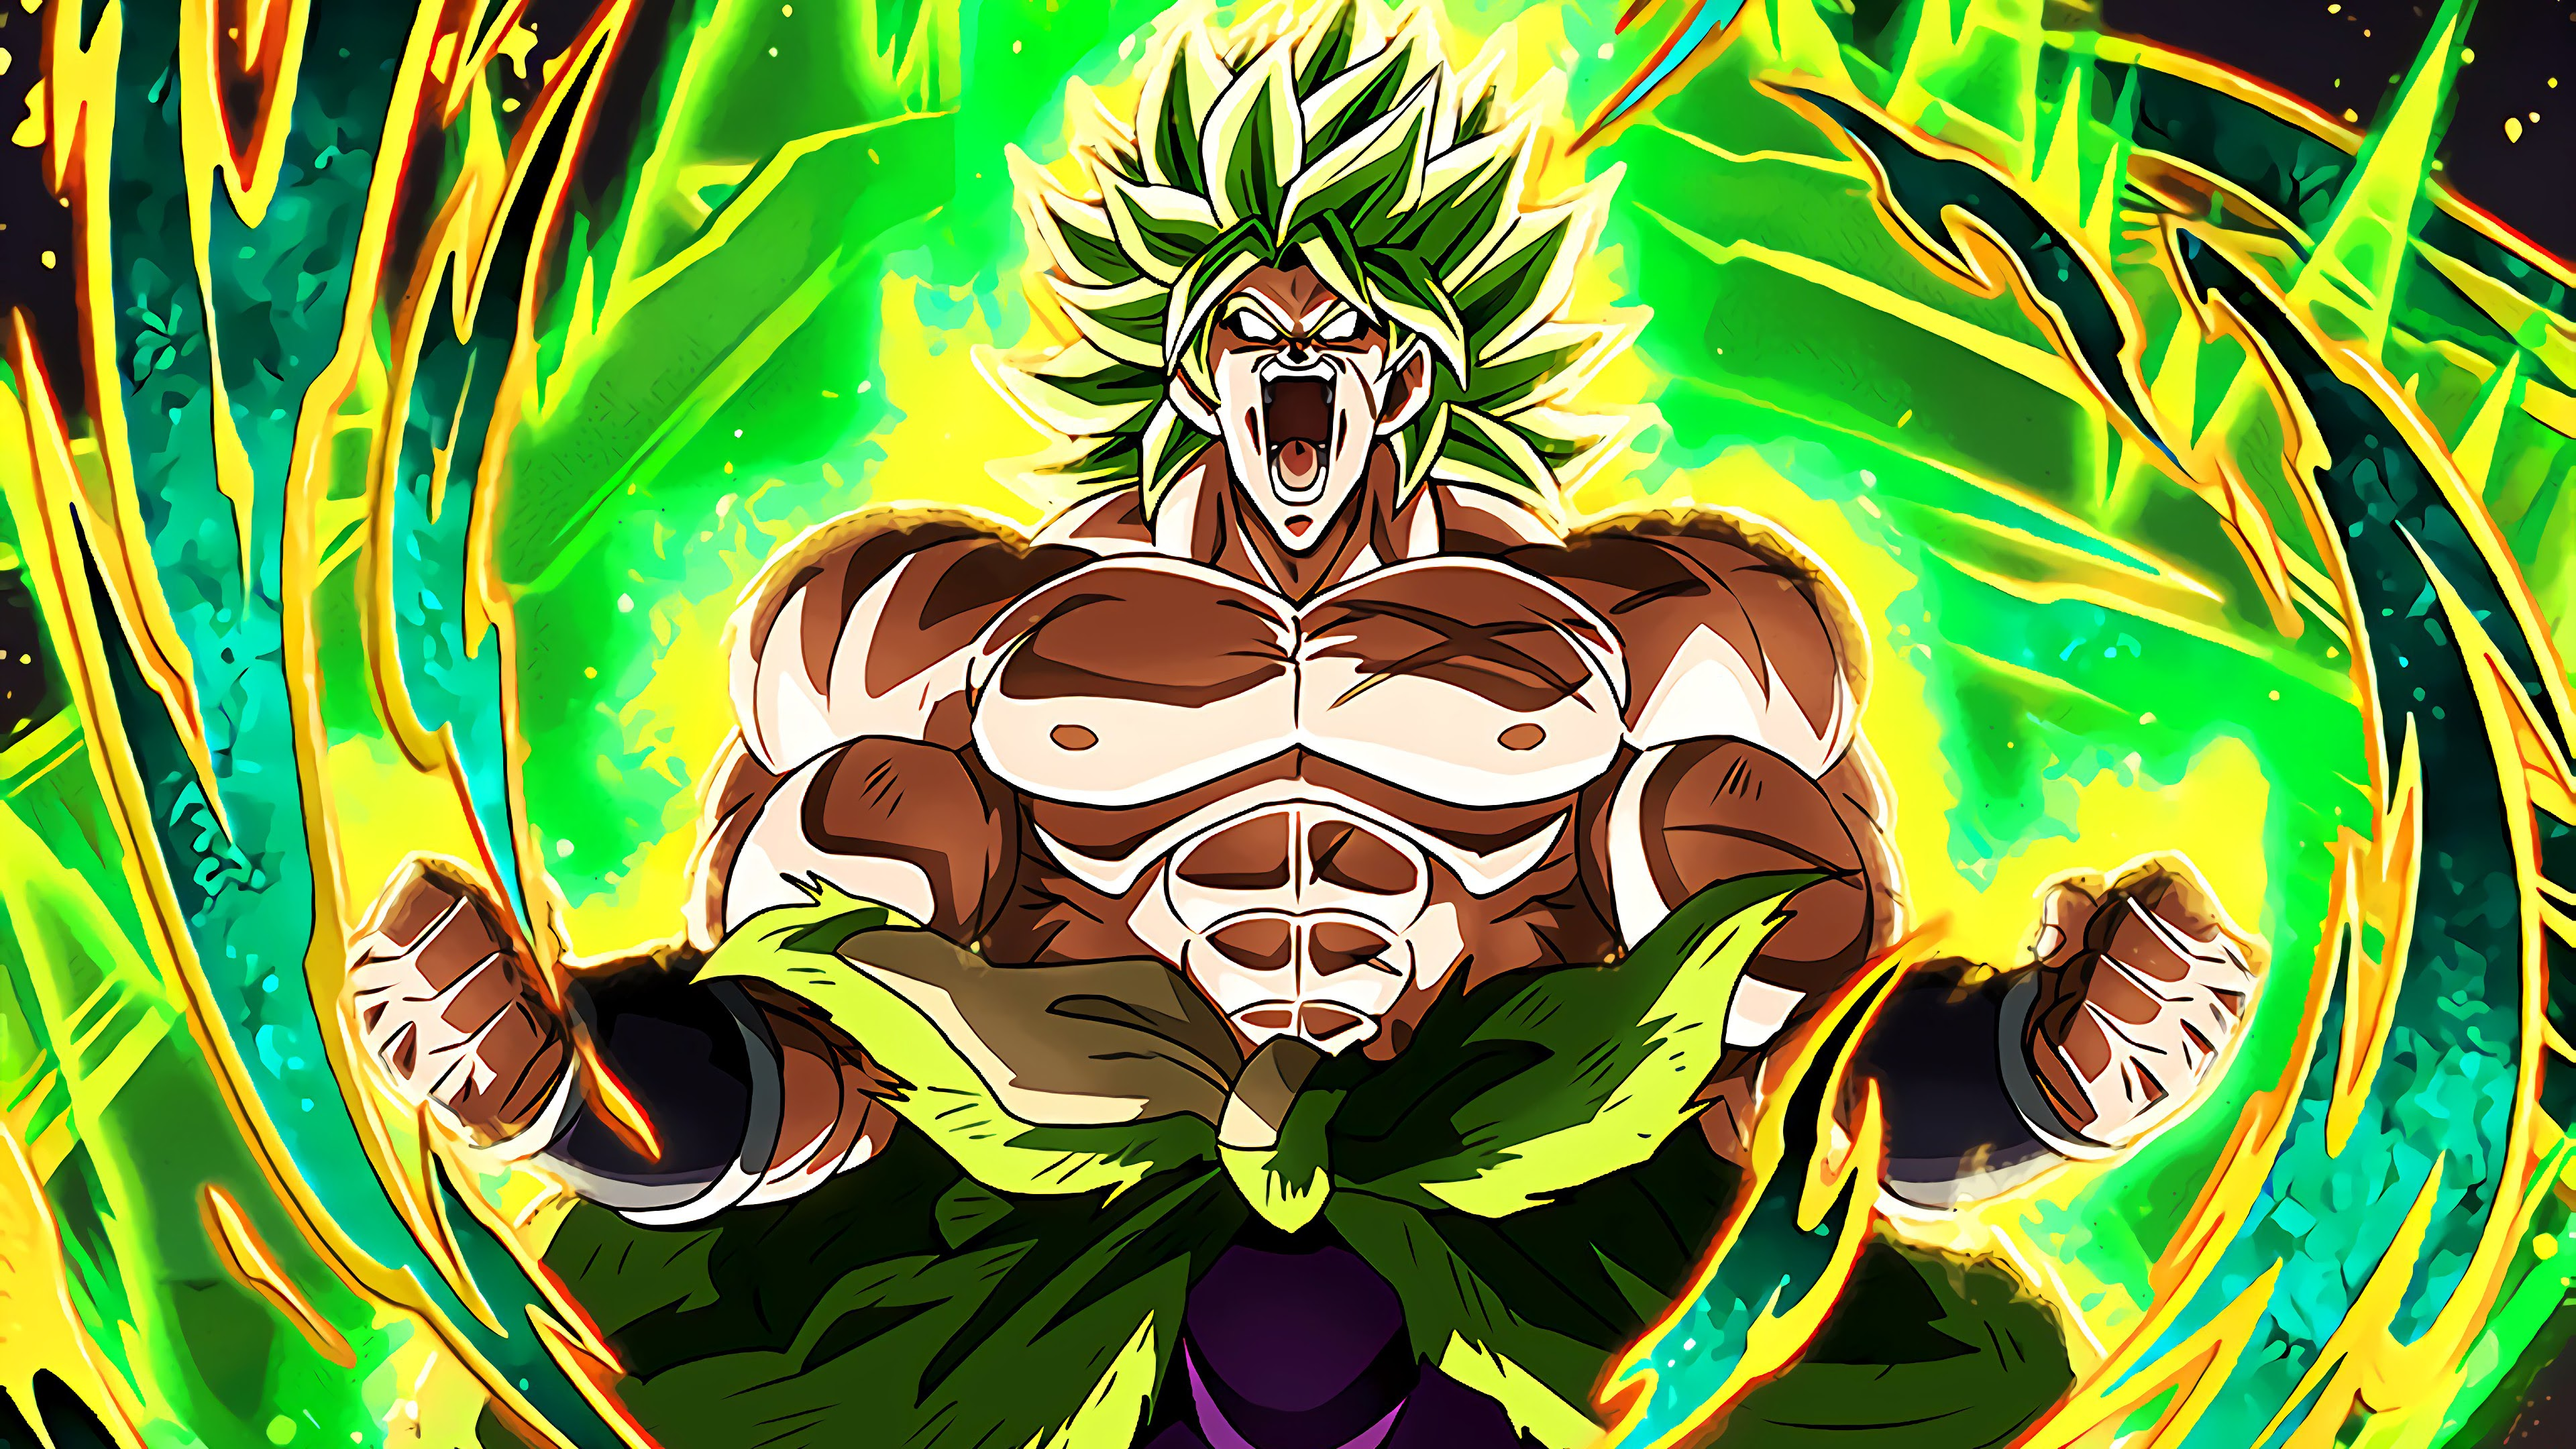 Broly, Legendary Super Saiyan, Dragon Ball Super: Broly, 4K, 3840x2160, #19 Wallpaper